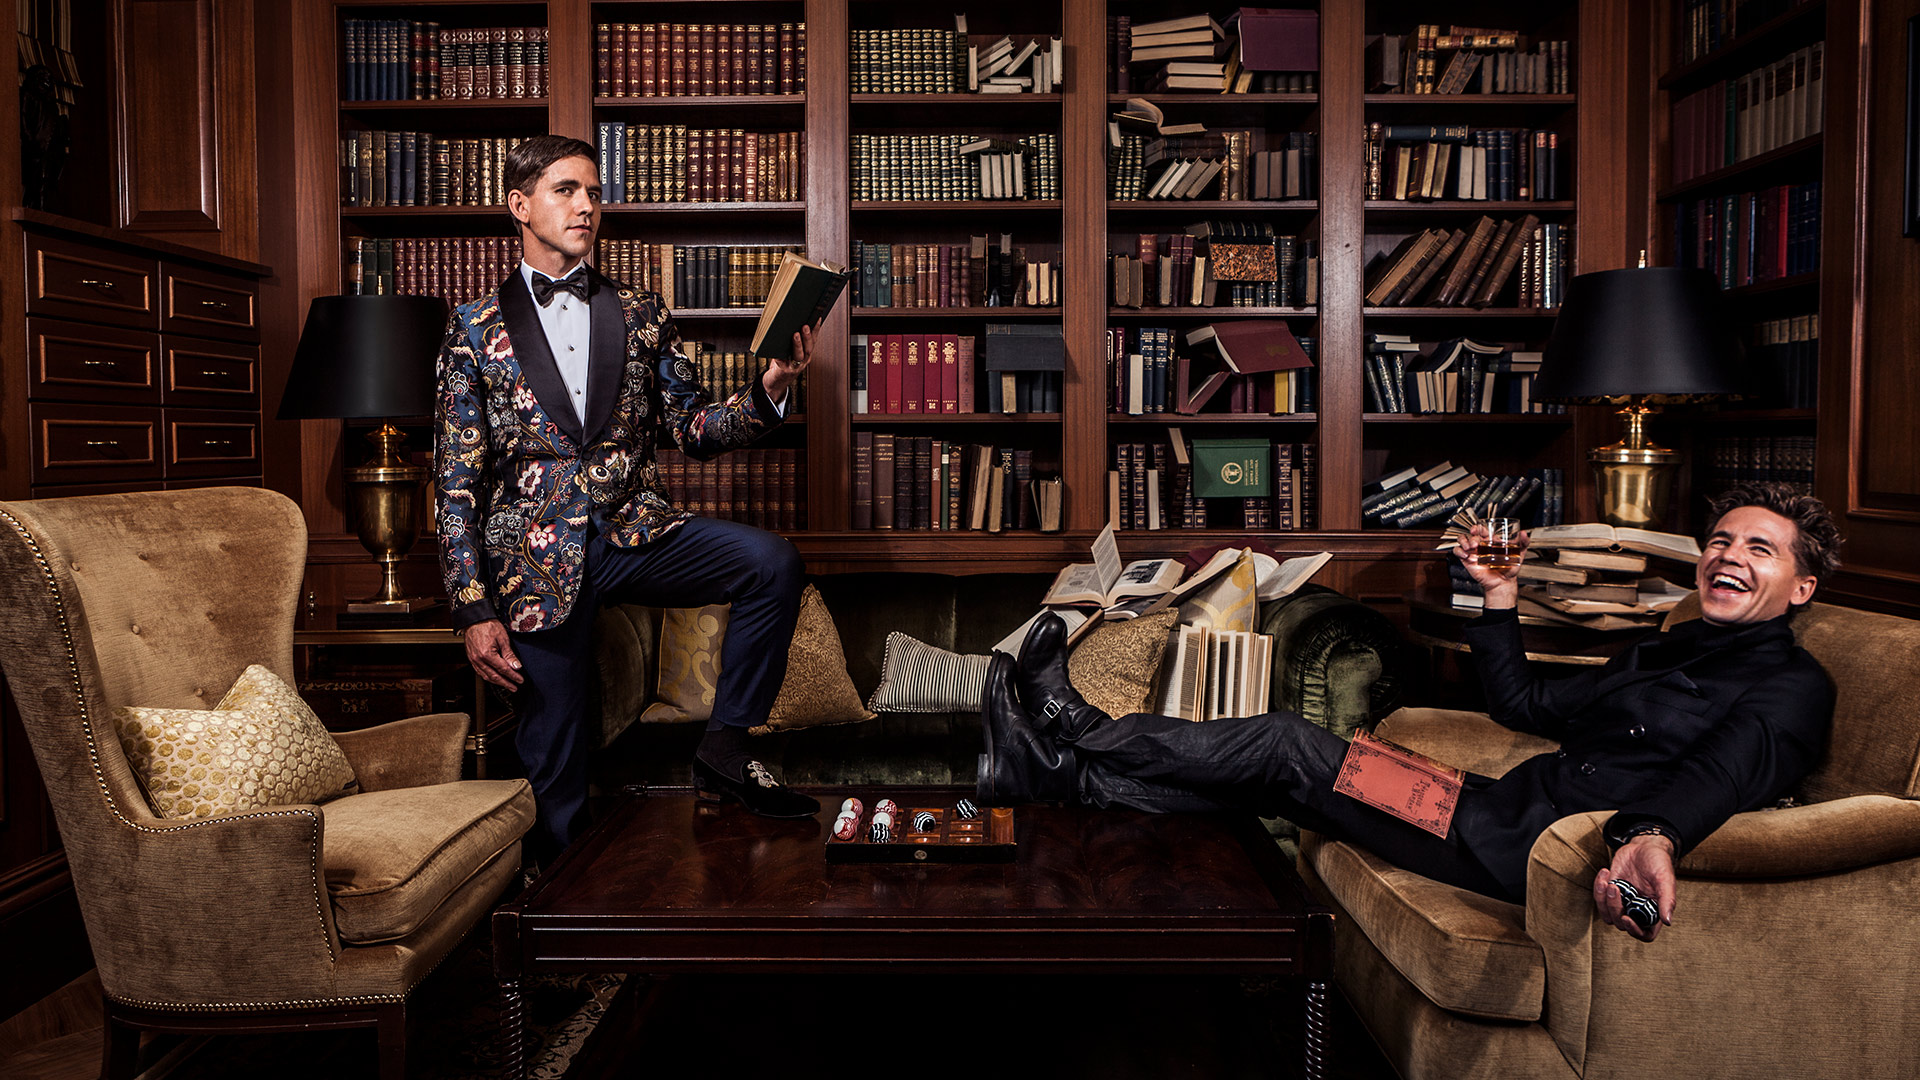 Brian Dietzen showing off two sides of his personality